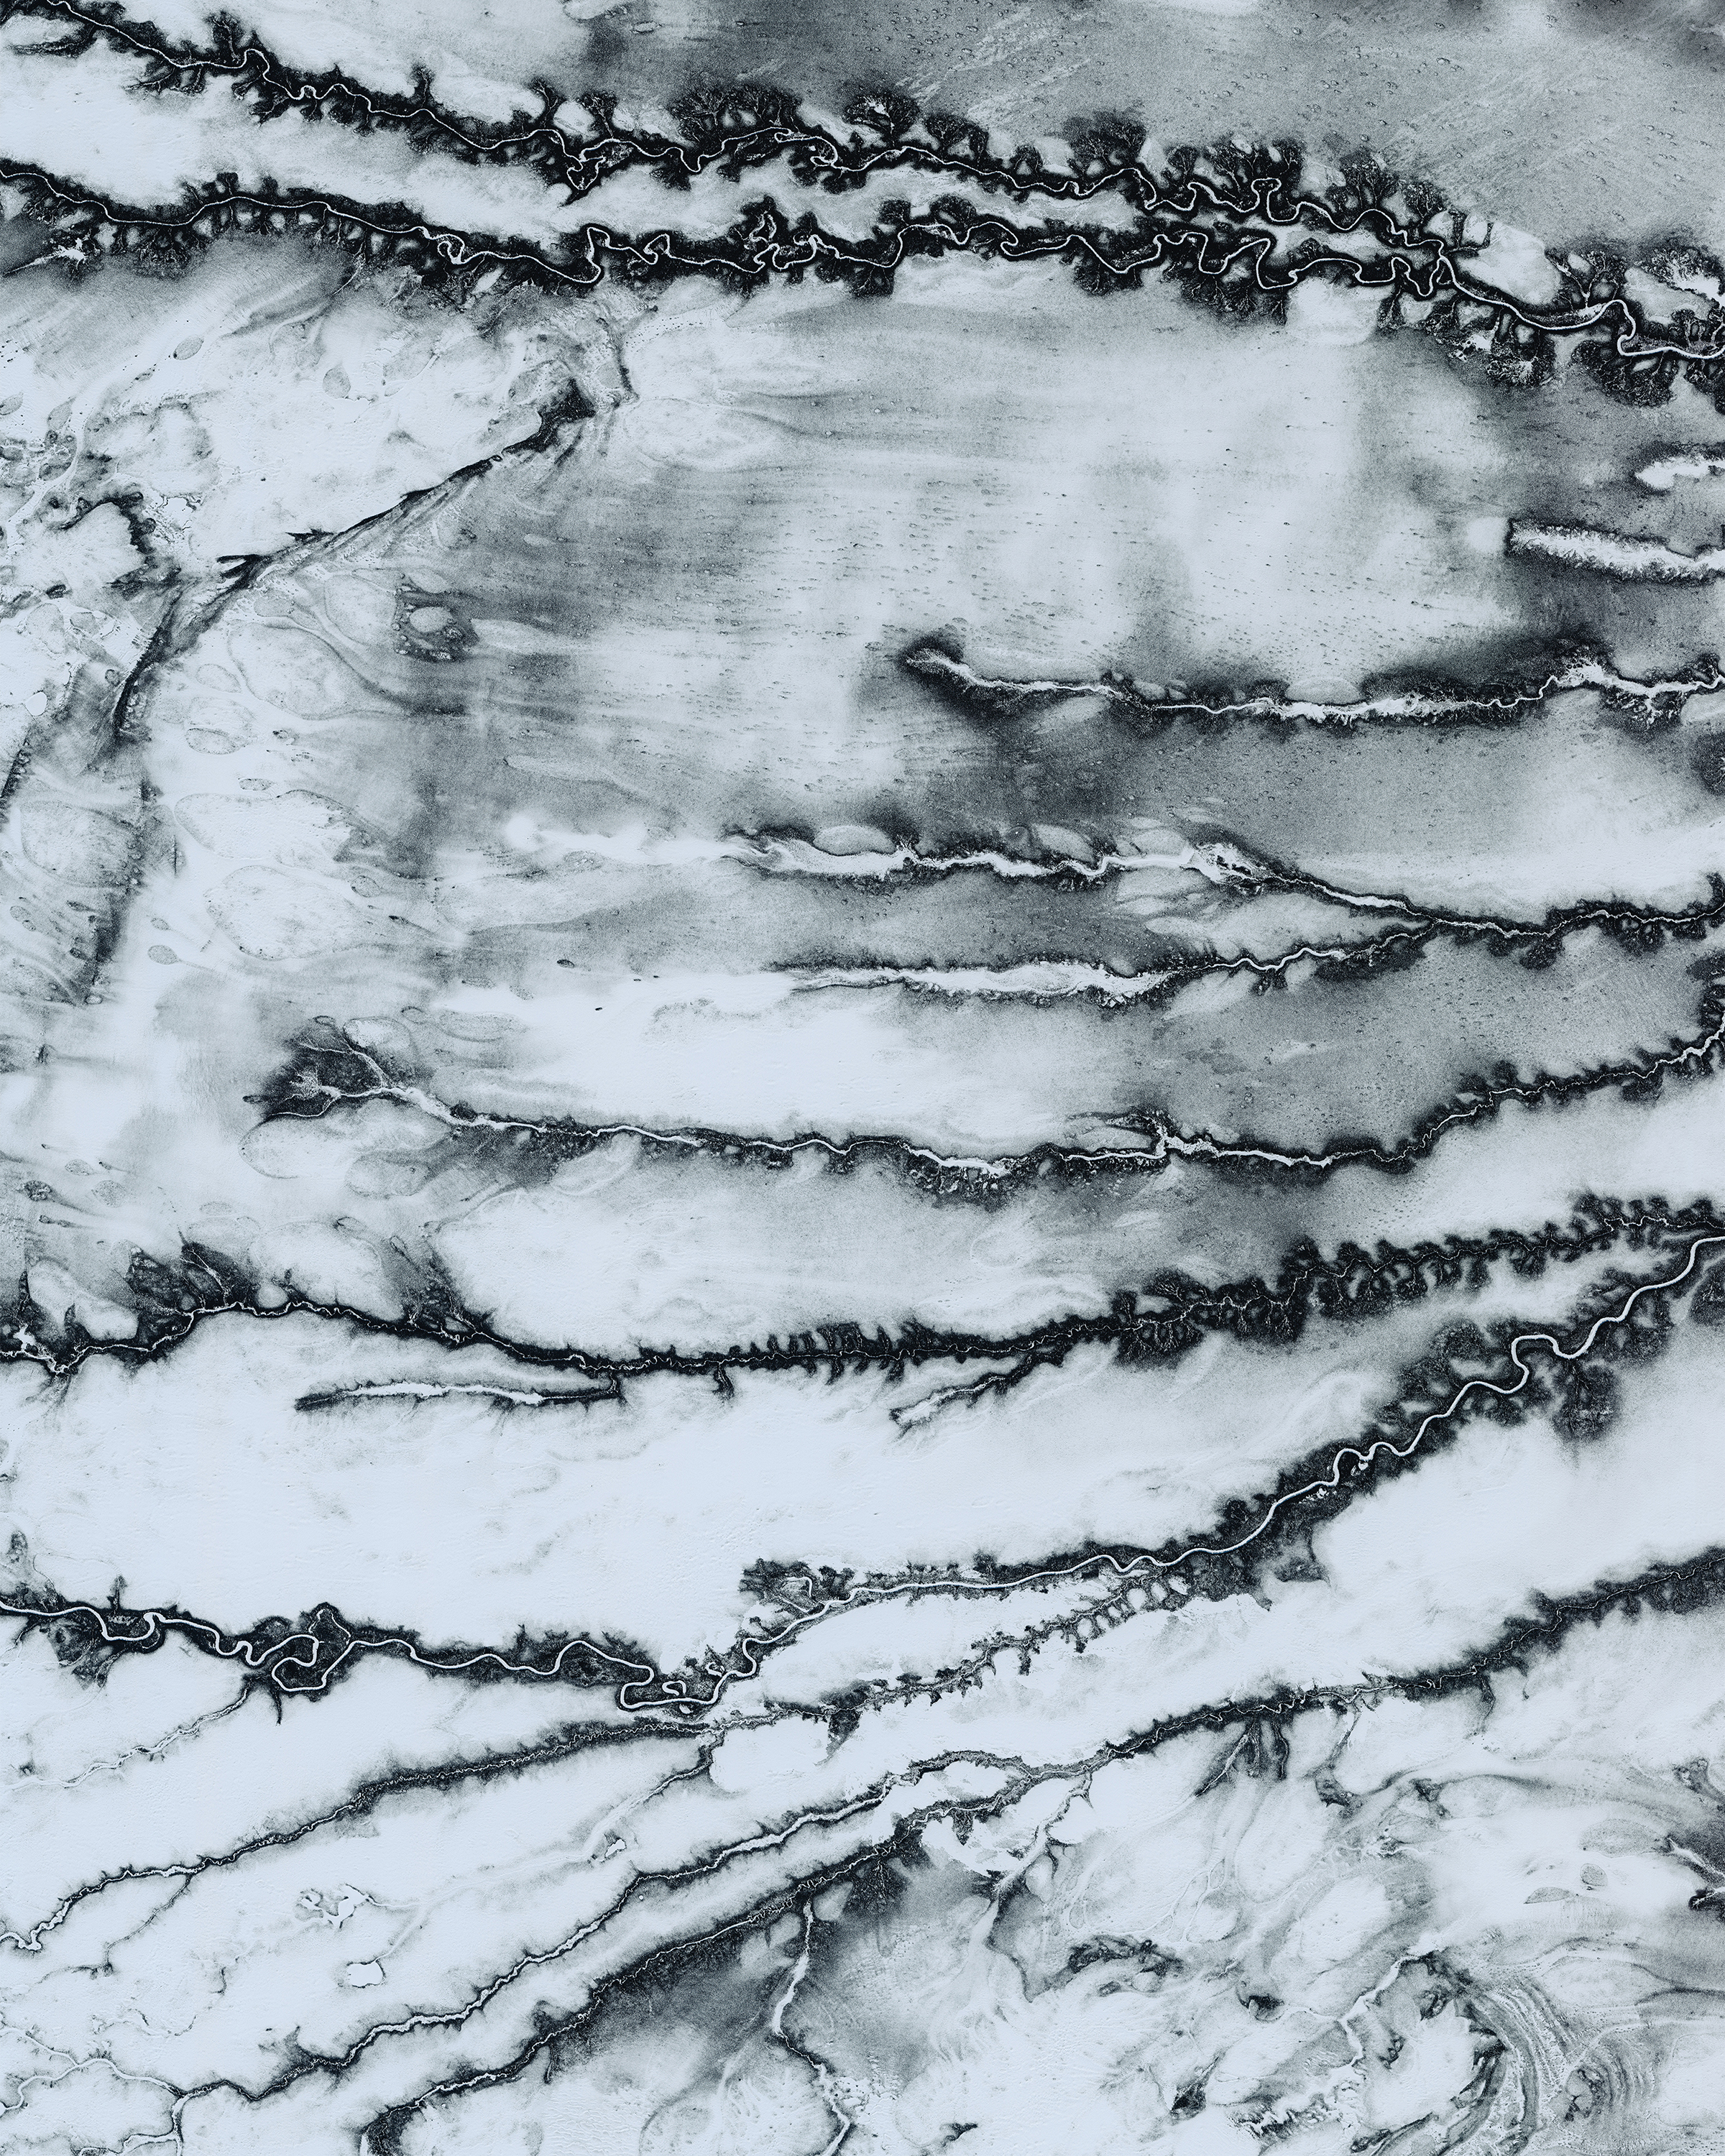 """Tributaries of the Moose River snake across snowy terrain near Moosonee, a town in northern Ontario, Canada. This area is part of the Hudson Plains Ecozone, a sparsely populated subarctic region extending from the western coast of Quebec to the coast of Manitoba. The ecozone contains the largest continuous wetland in the world, including the Moose River's 41,900-square-mile (108,500 sq. km) drainage basin.  51°04'26.3""""N, 81°28'28.6""""W  Source imagery: DigitalGlobe"""